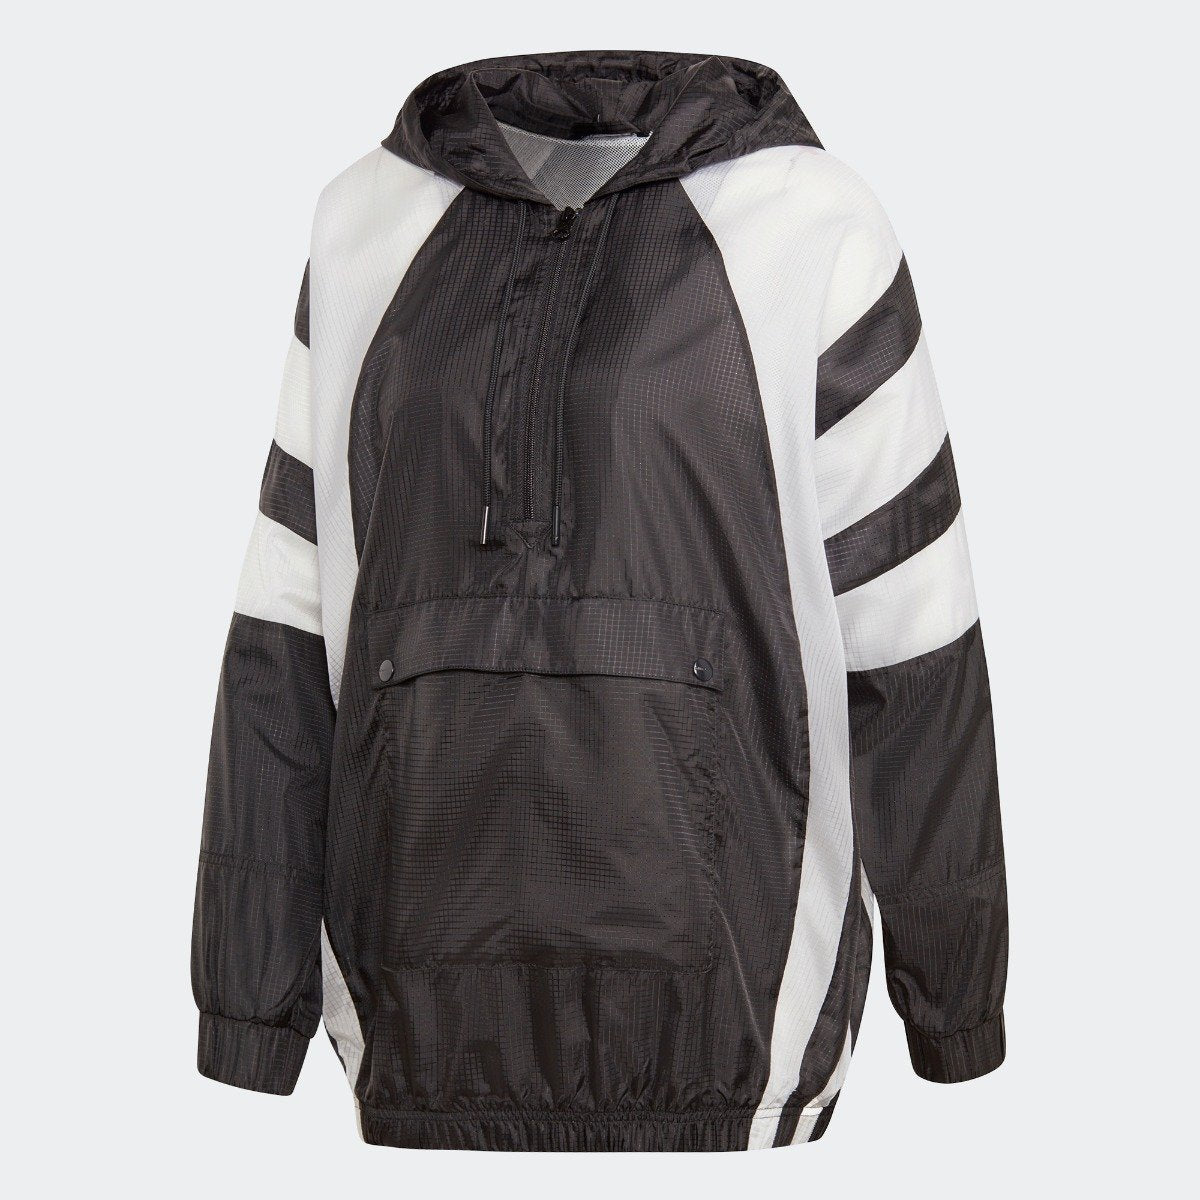 48424425285e Women s adidas Originals EQT Windbreaker Jacket Black CD6883 ...